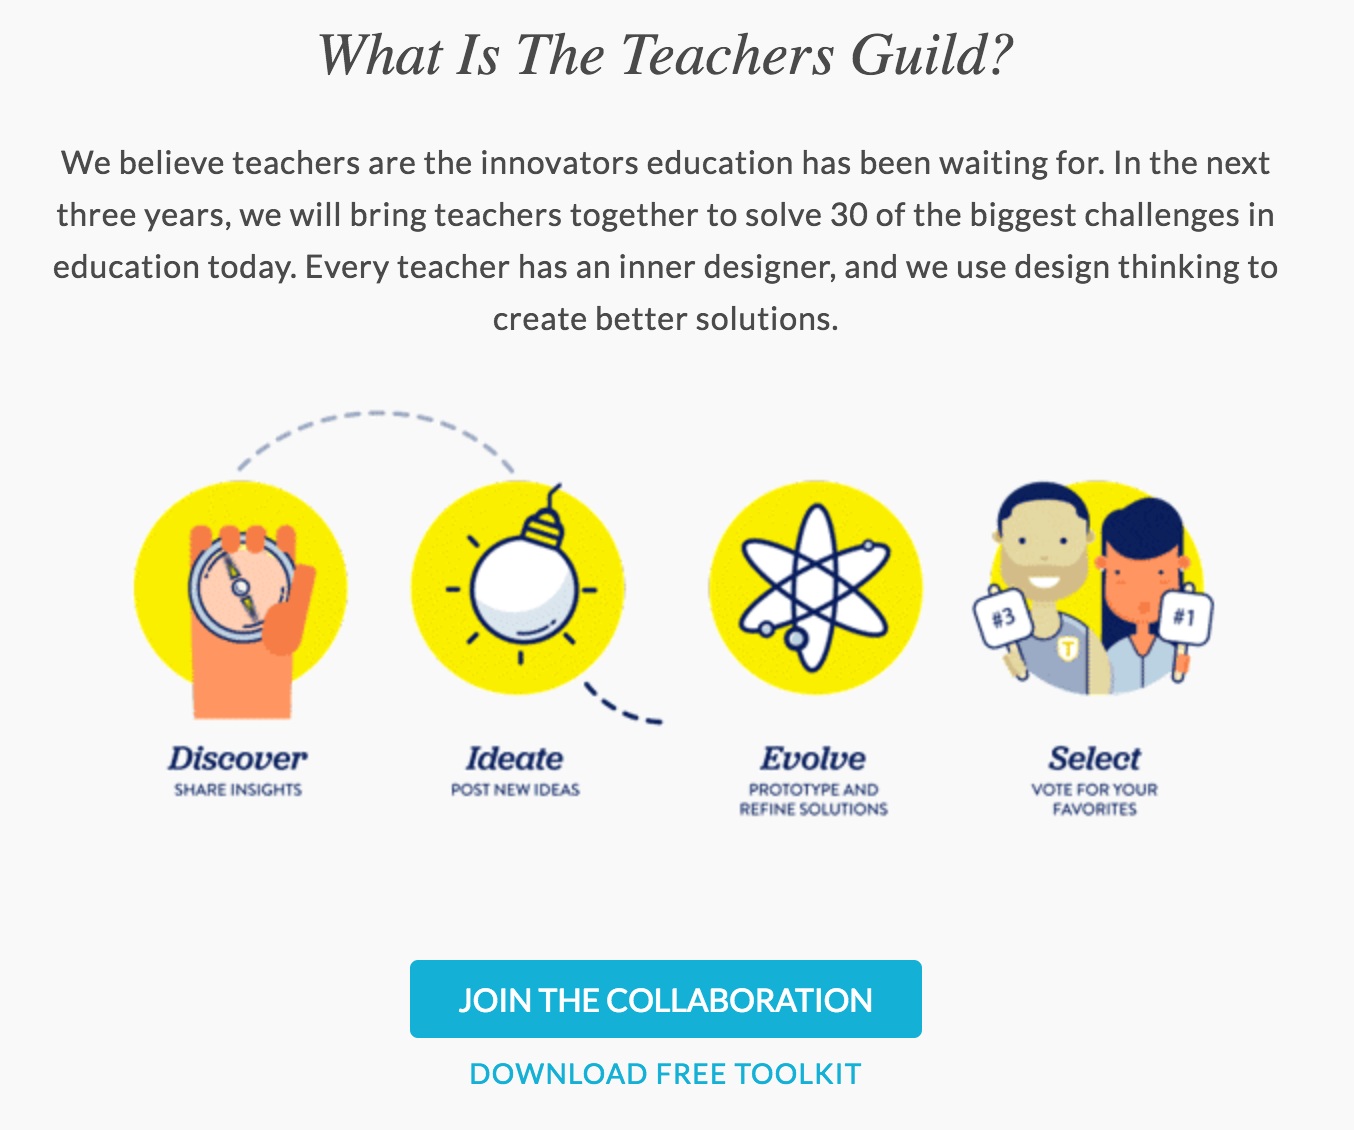 Design Better Education Together - theuxblog com